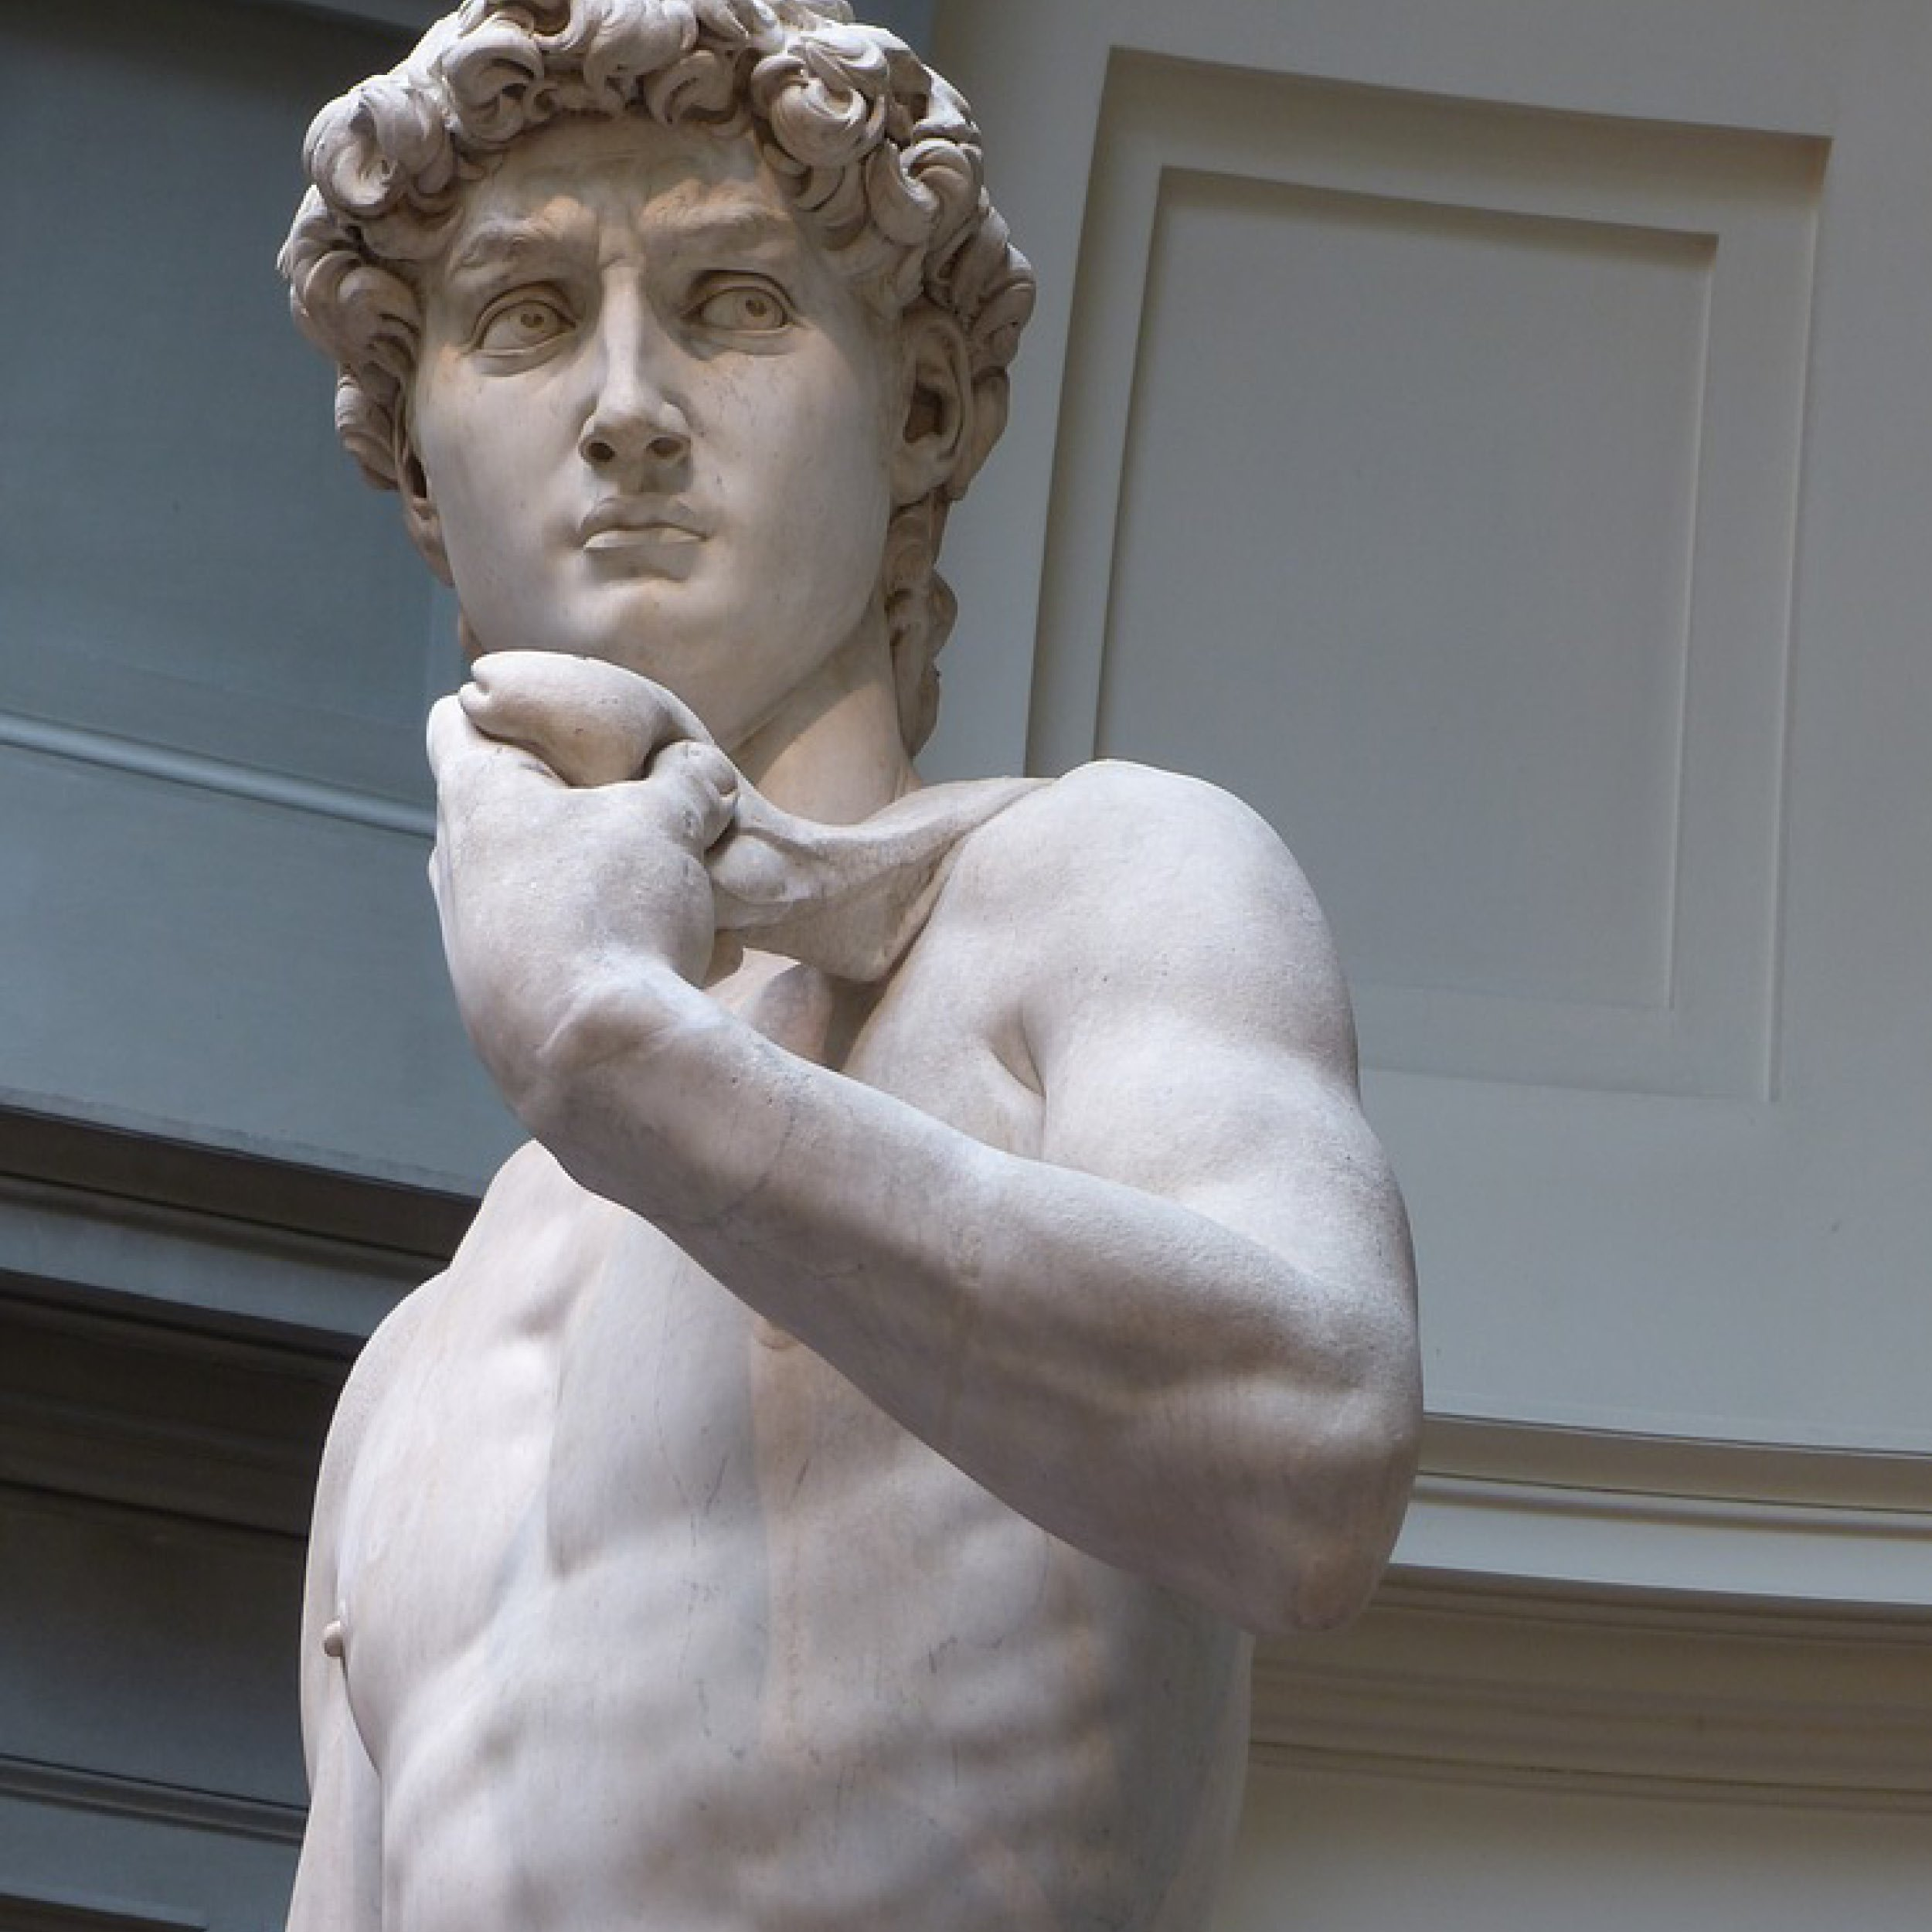 Podcast: Il David di Michelangelo